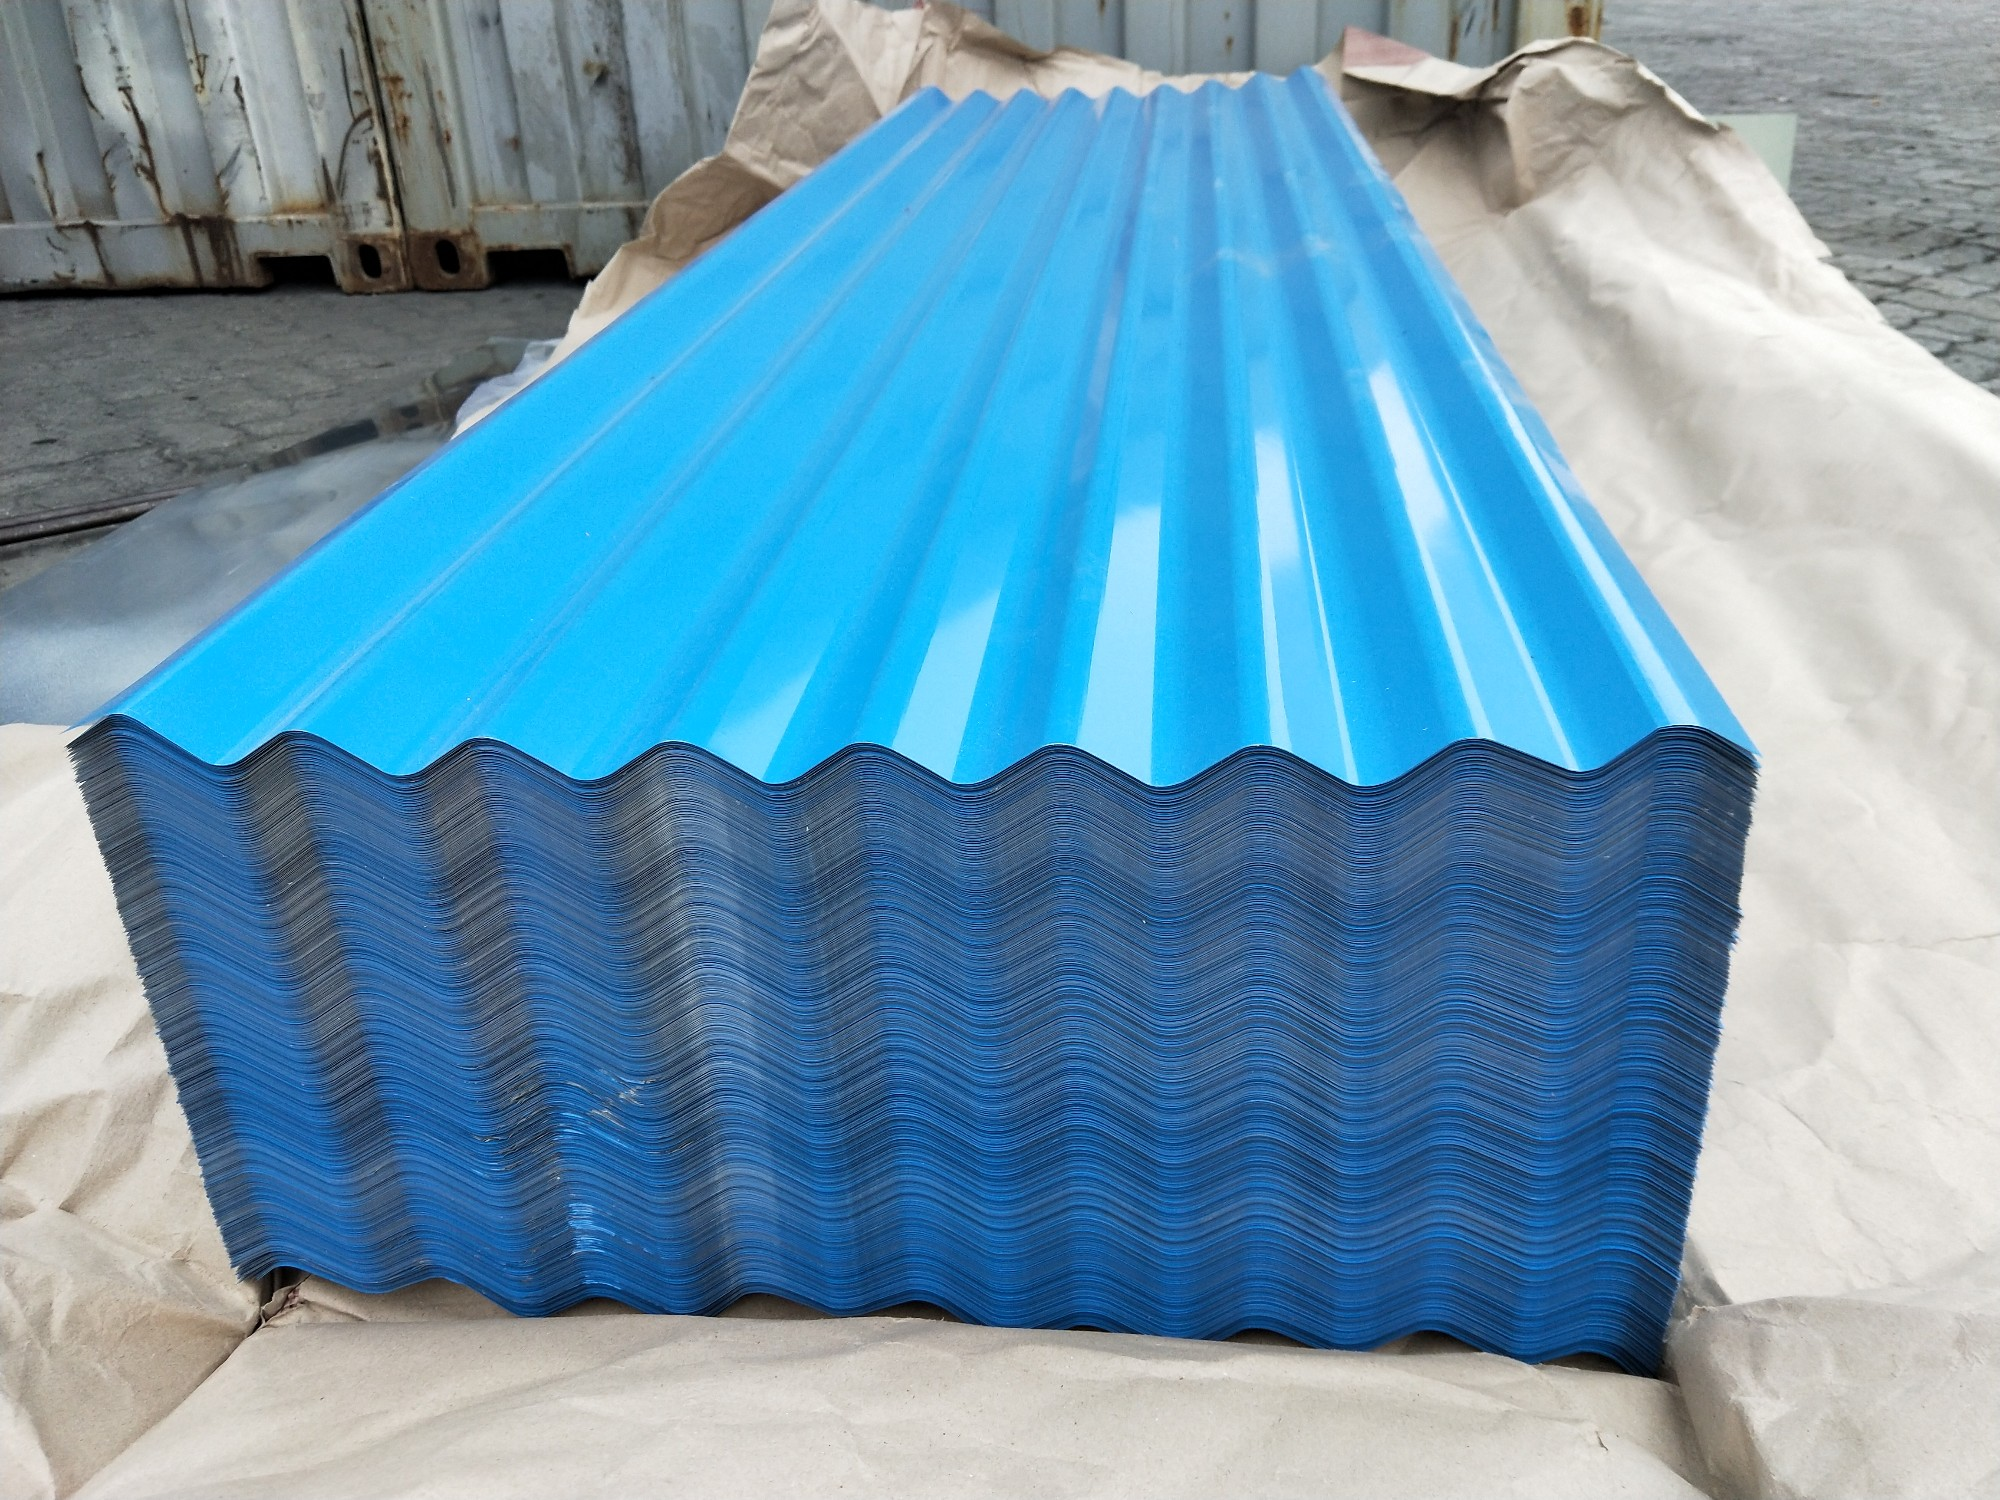 Colored Aluminum Roof Sheets Manufacturers, Colored Aluminum Roof Sheets Factory, Supply Colored Aluminum Roof Sheets